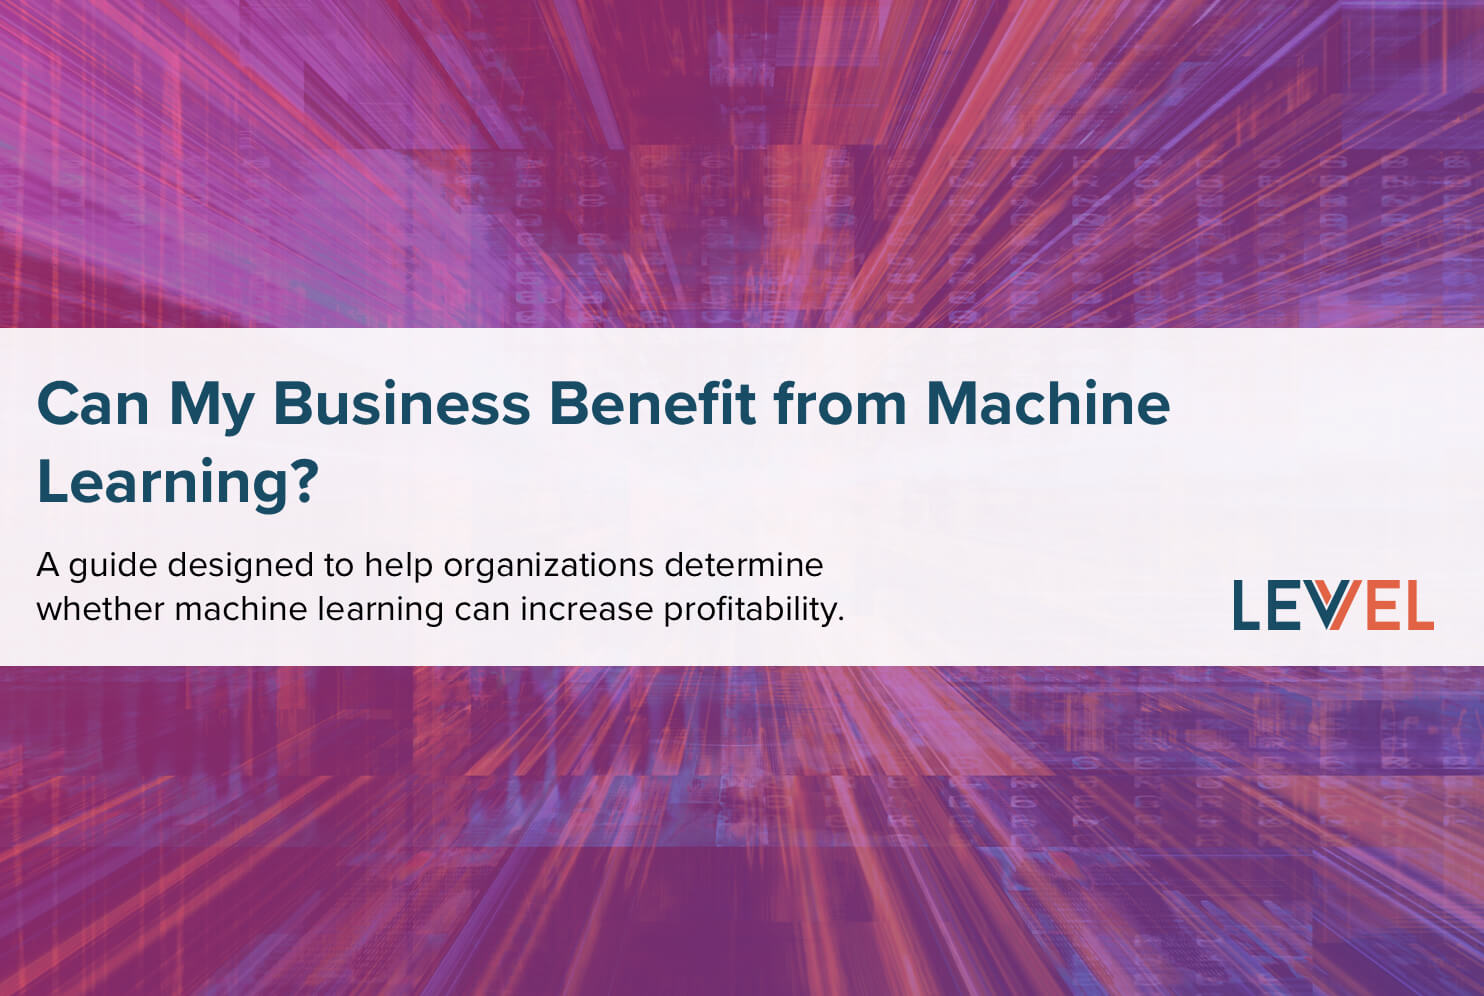 Can My Business Benefit from Machine Learning?